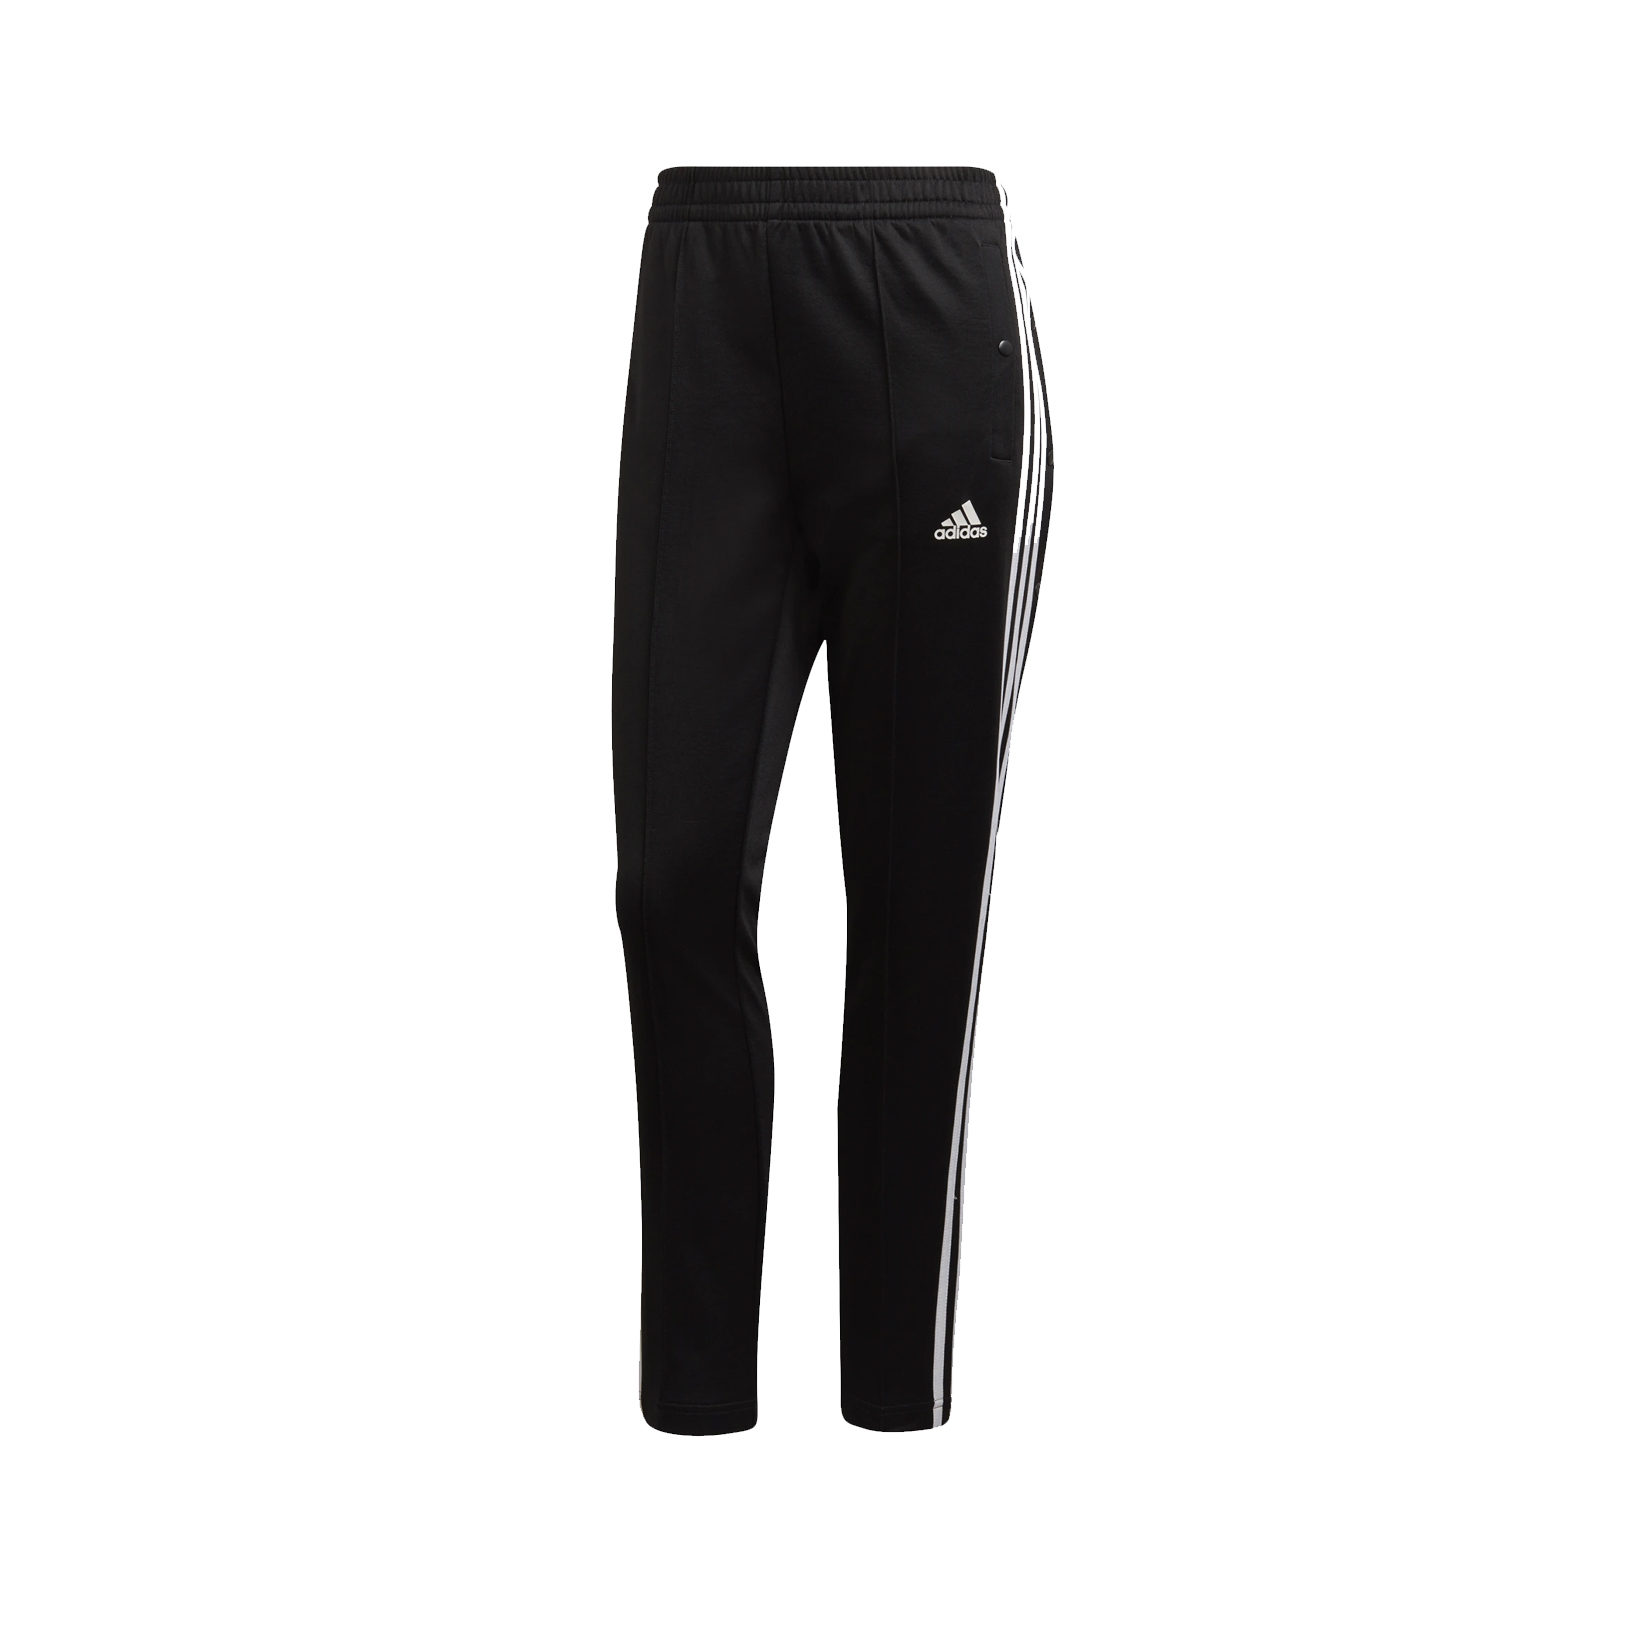 Adidas Must Haves Snap Pants Black